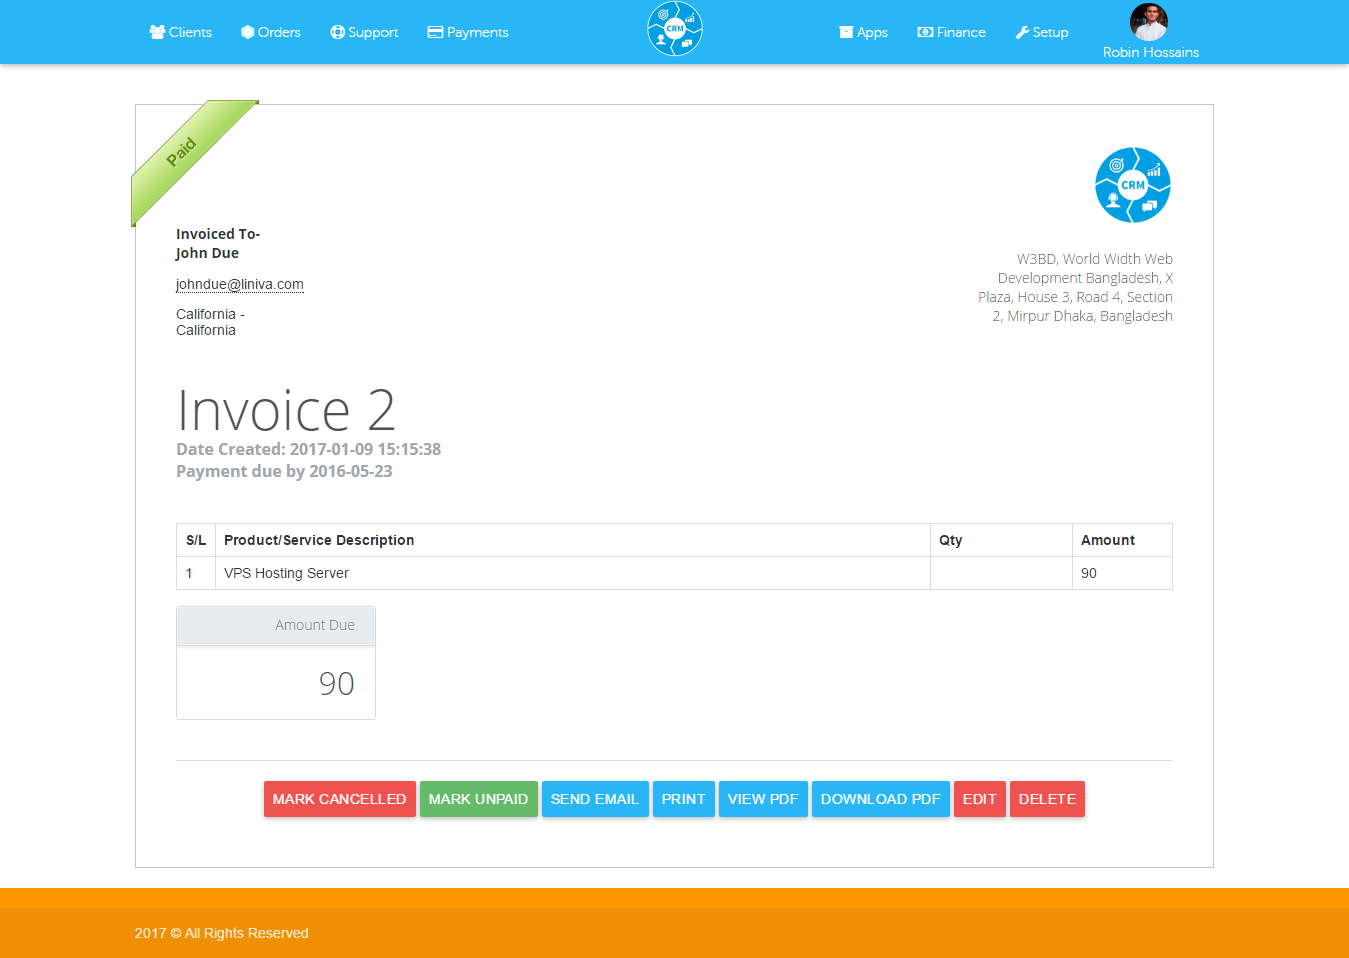 all in one business invoice management system software crm all in one business invoice management system software crm material design